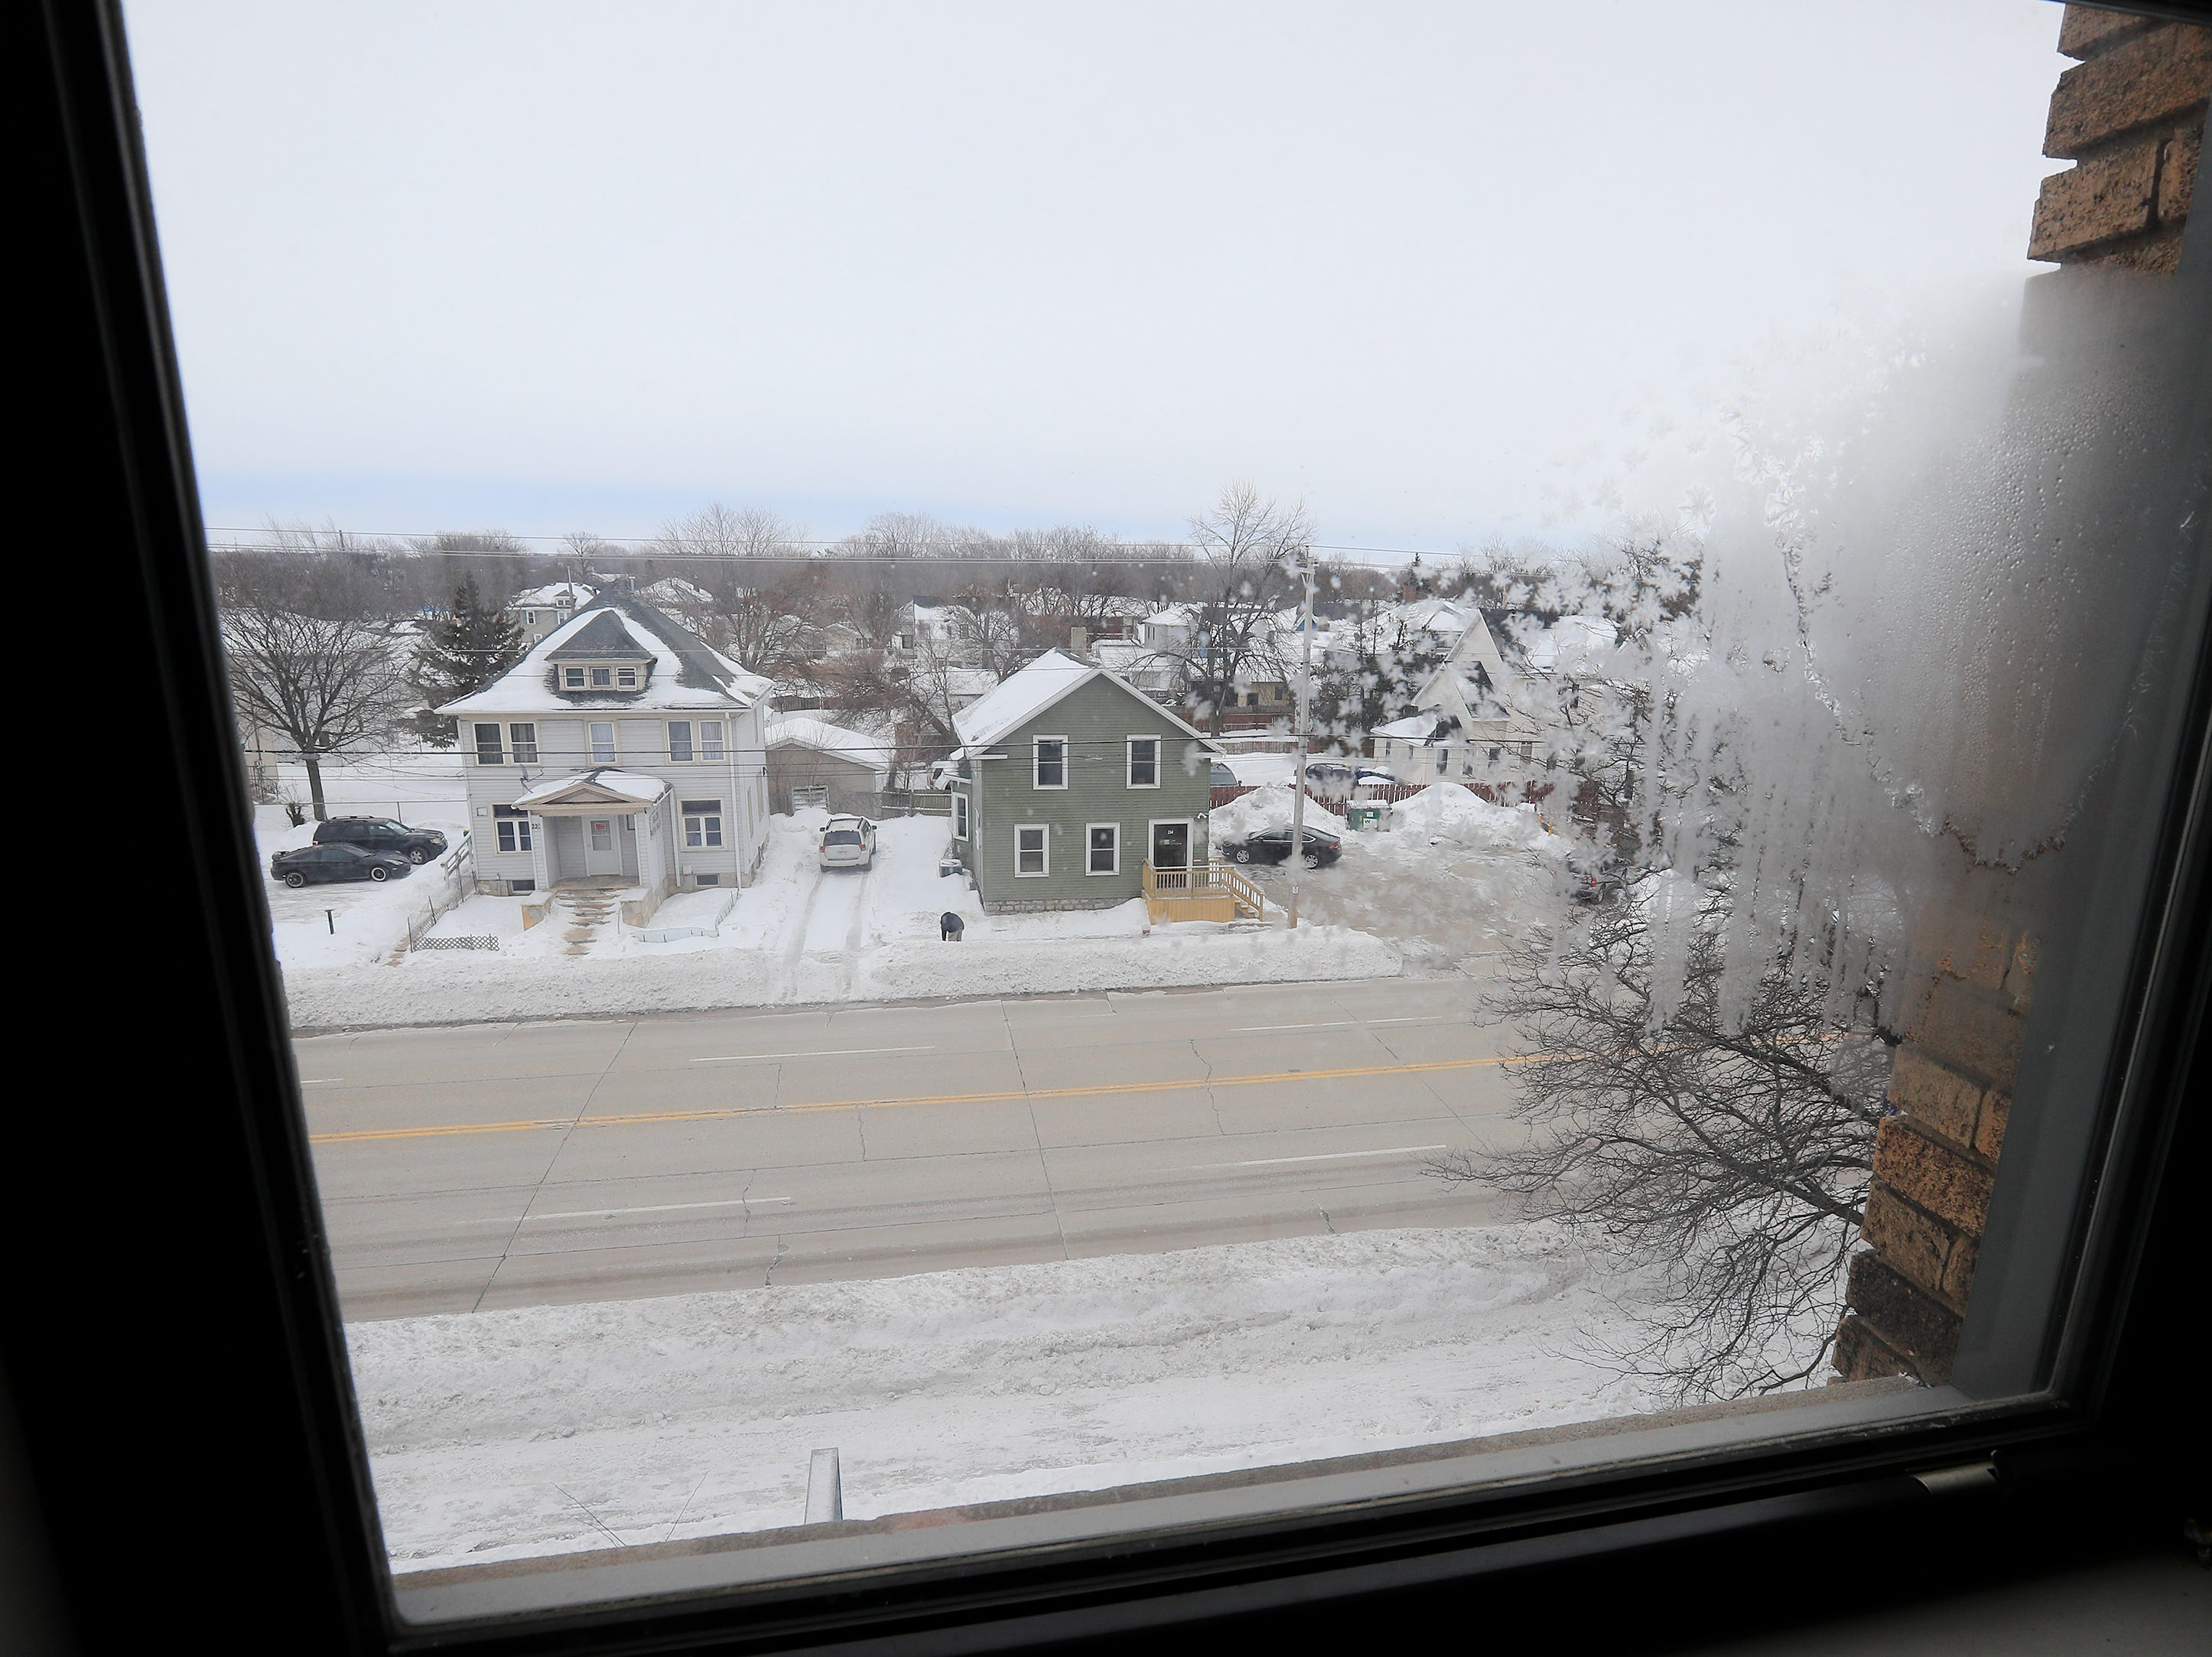 A view from inside the former Whitney School building is shown on Tuesday, February 26, 2019 in Green Bay, Wis. The building is being converted into apartments this year.